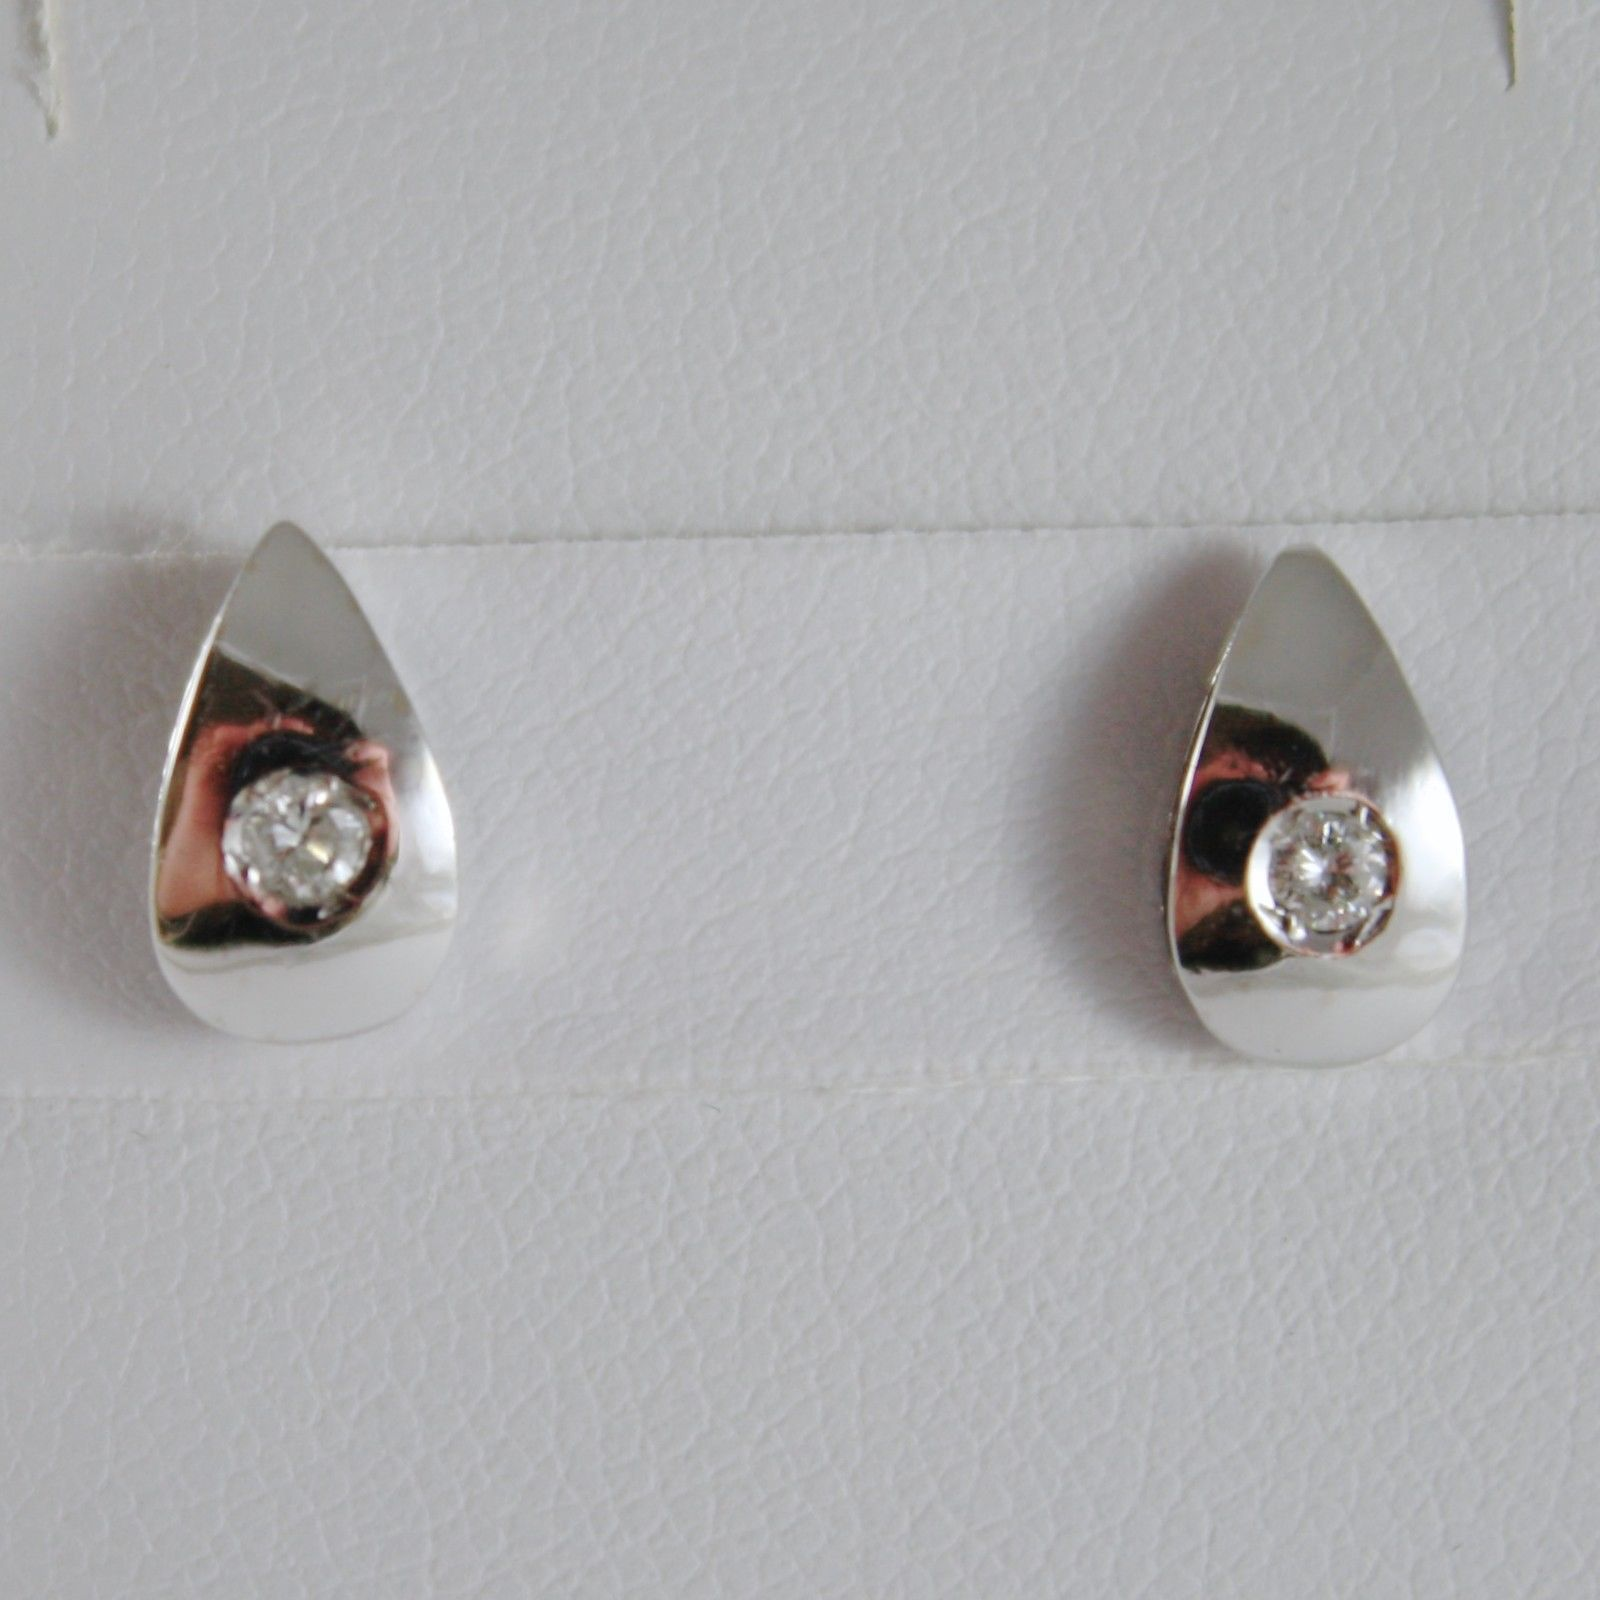 18K WHITE GOLD DROP EARRINGS WITH DIAMOND DIAMONDS 0.08 CARATS, MADE IN ITALY